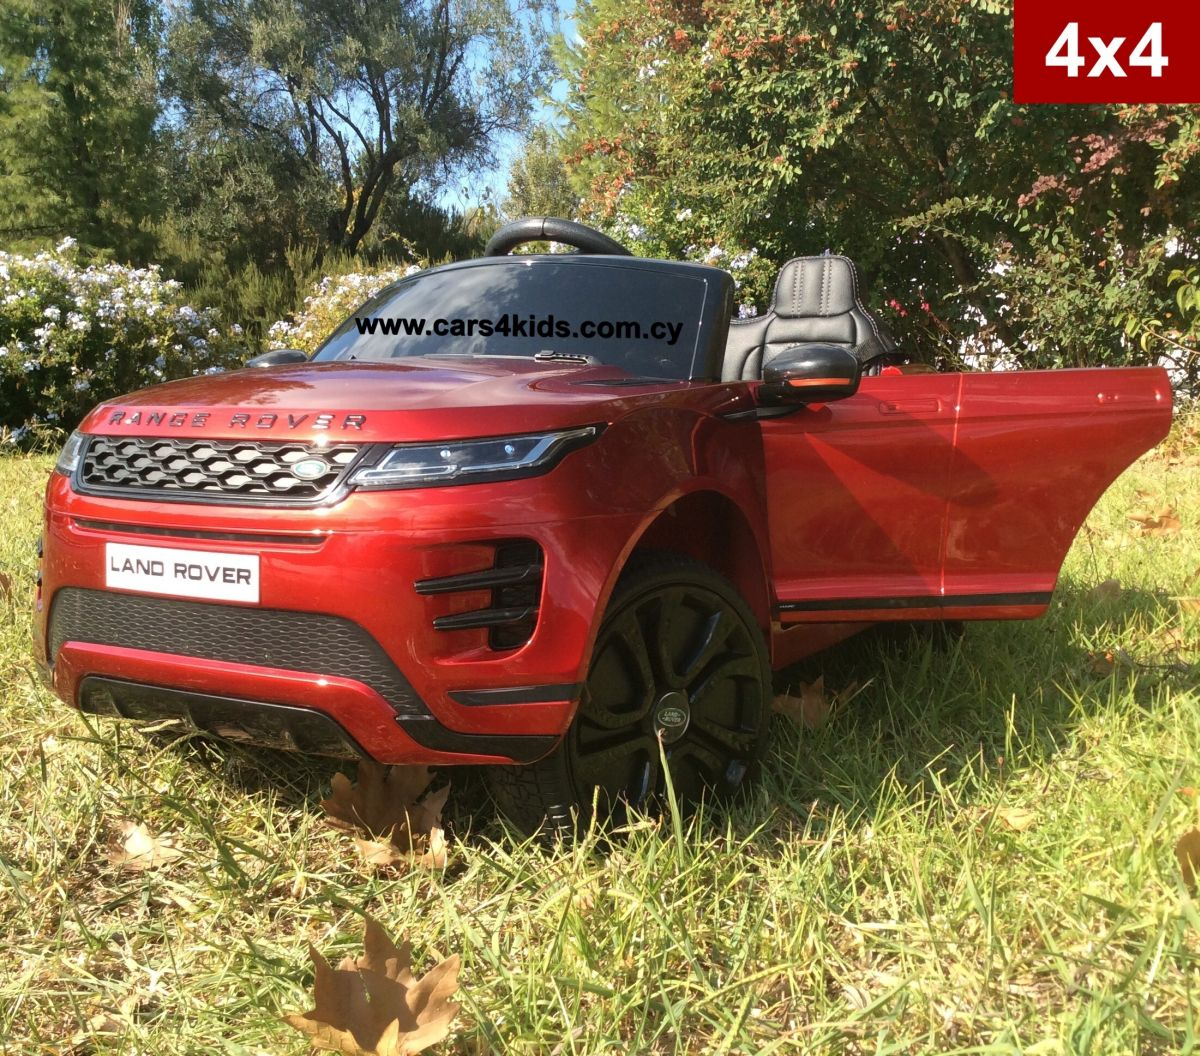 Range Rover Evoque Painting Red with 2.4G R/C under License